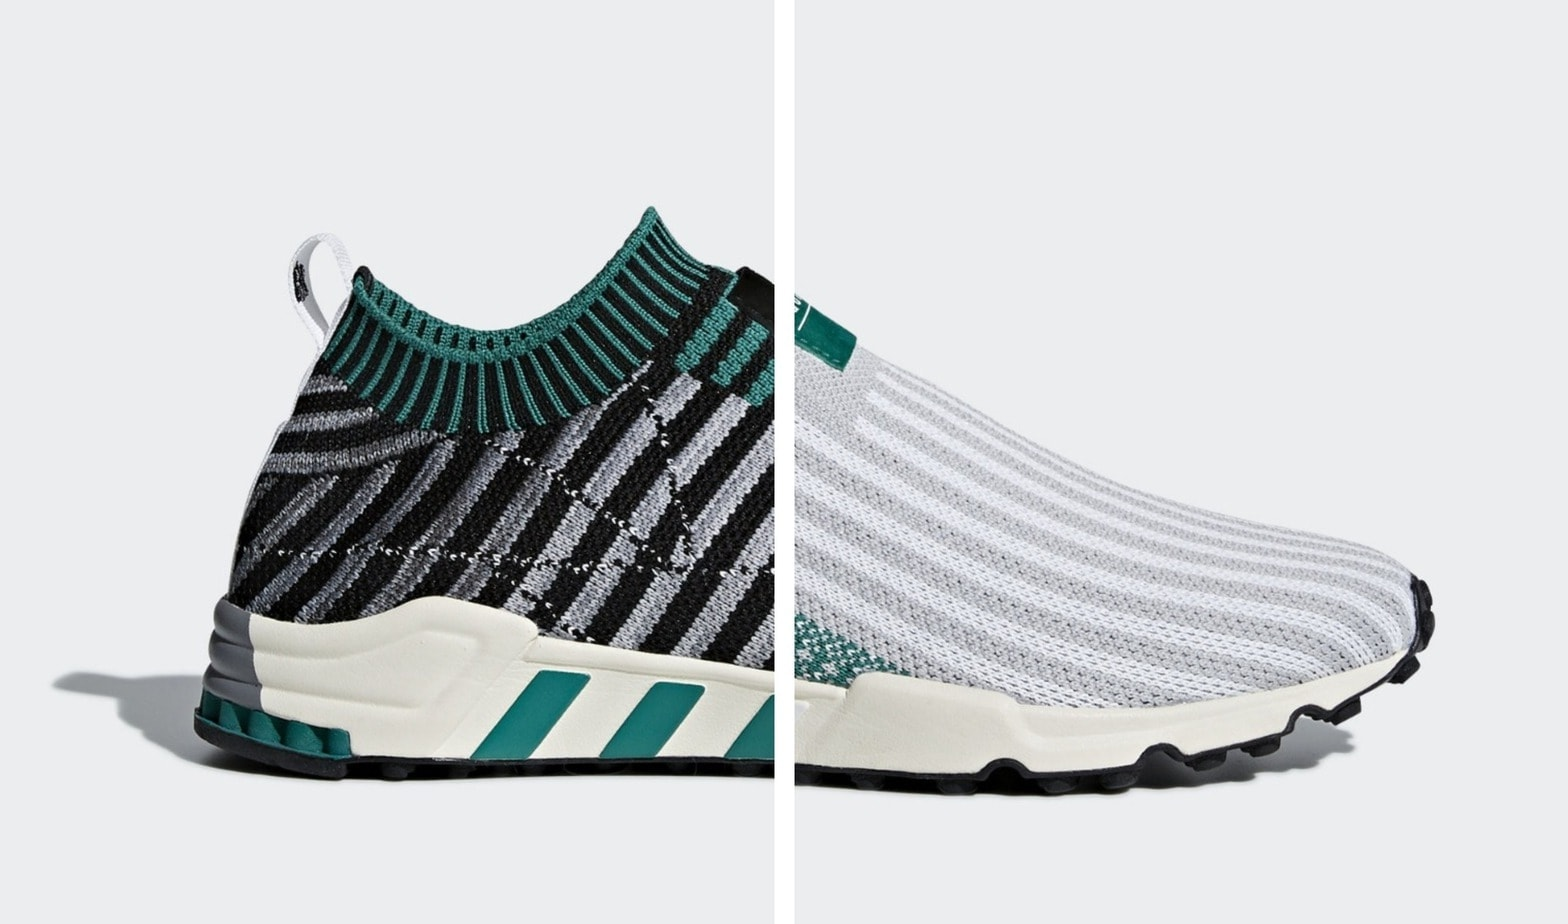 buy online ebcfd ad901 First Look at the adidas EQT Support SK Primeknit Coming This Summer